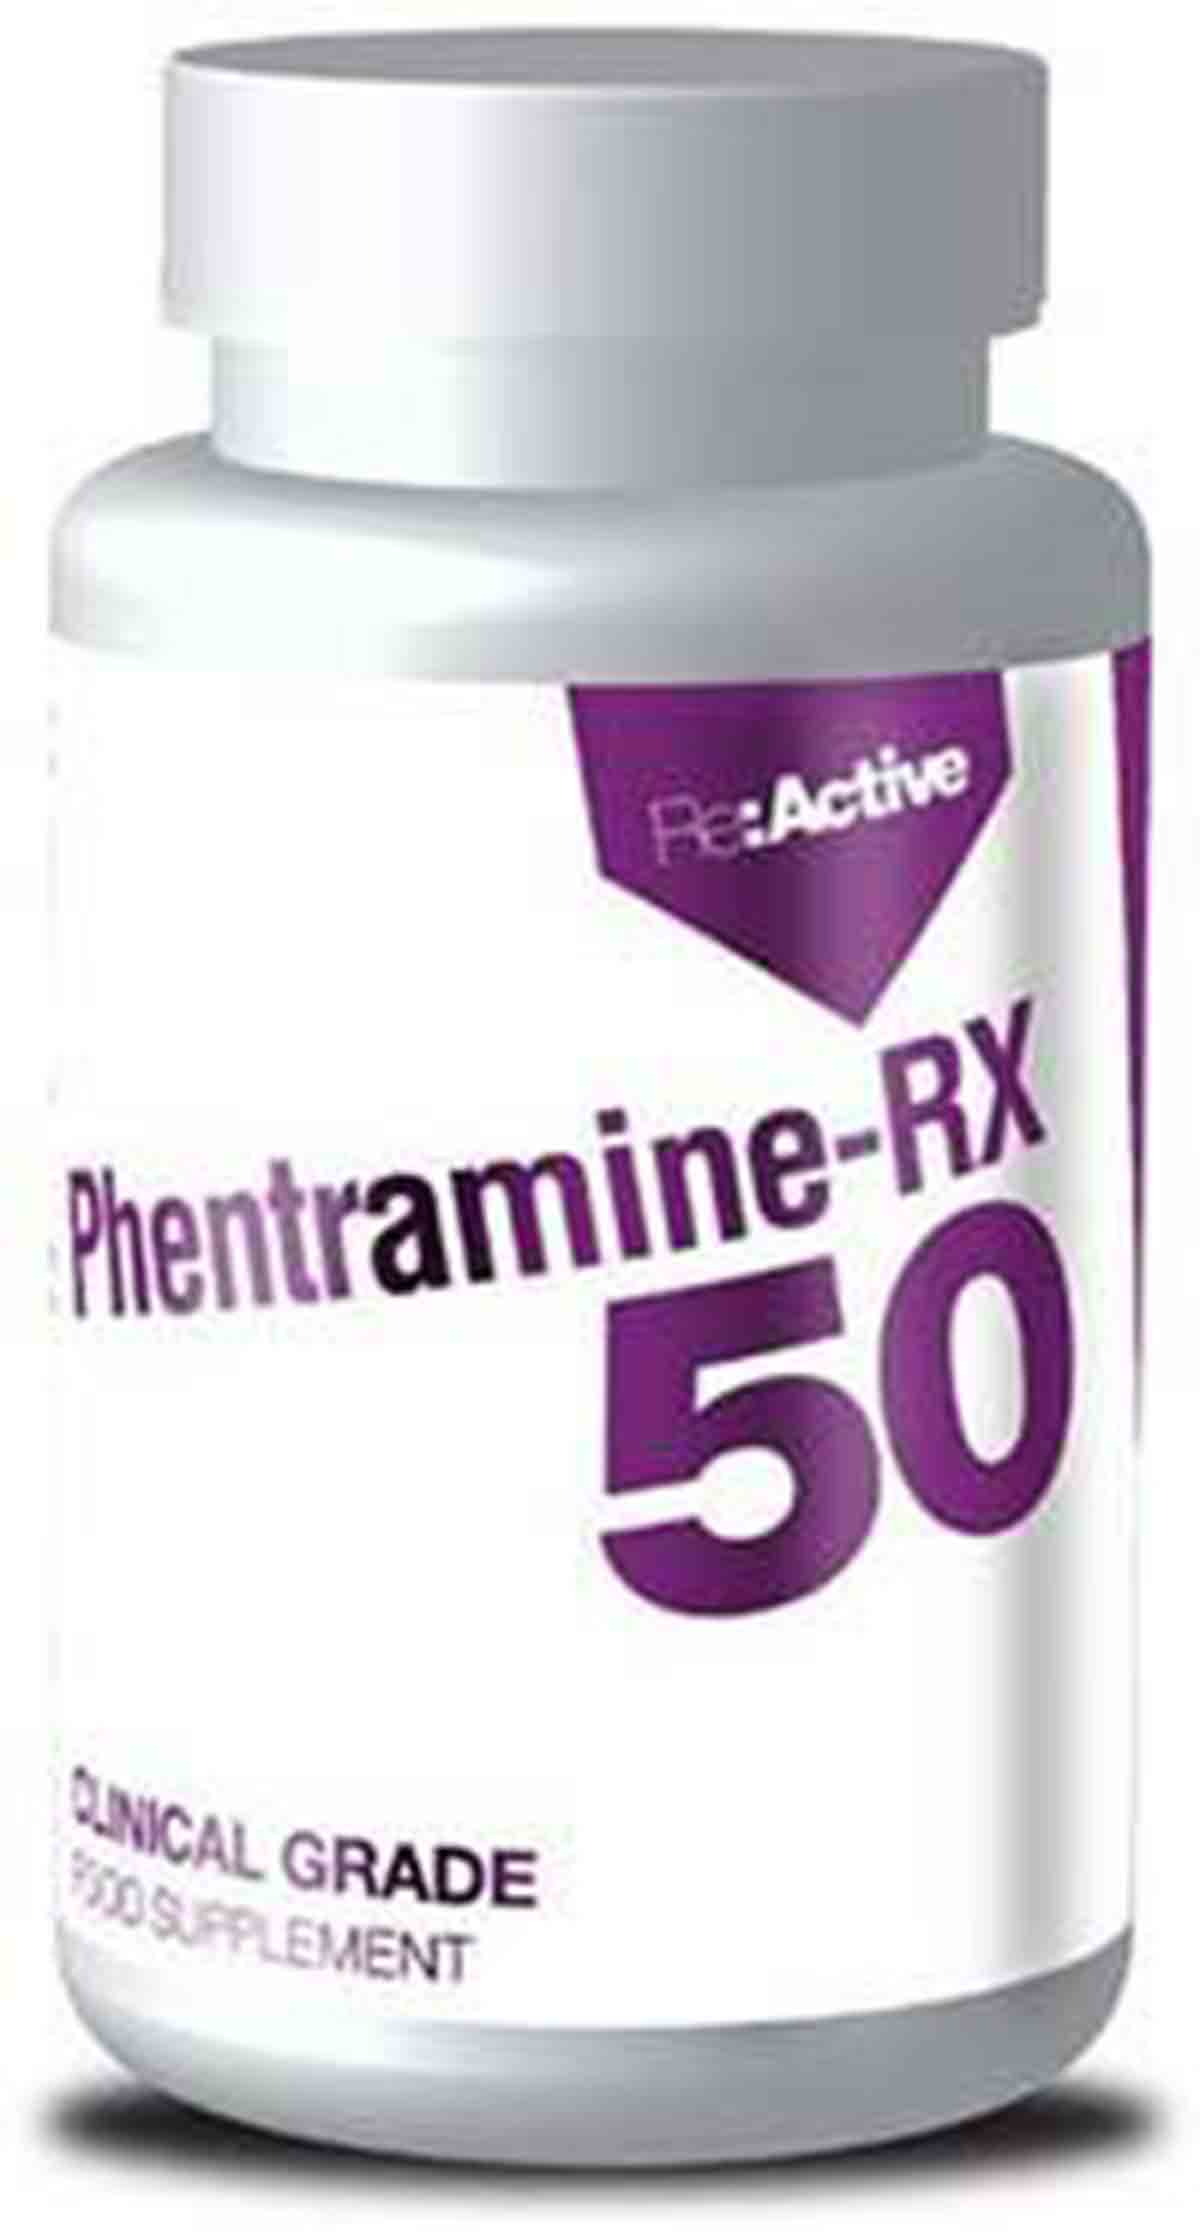 Re-Active Phentramine-RX 50